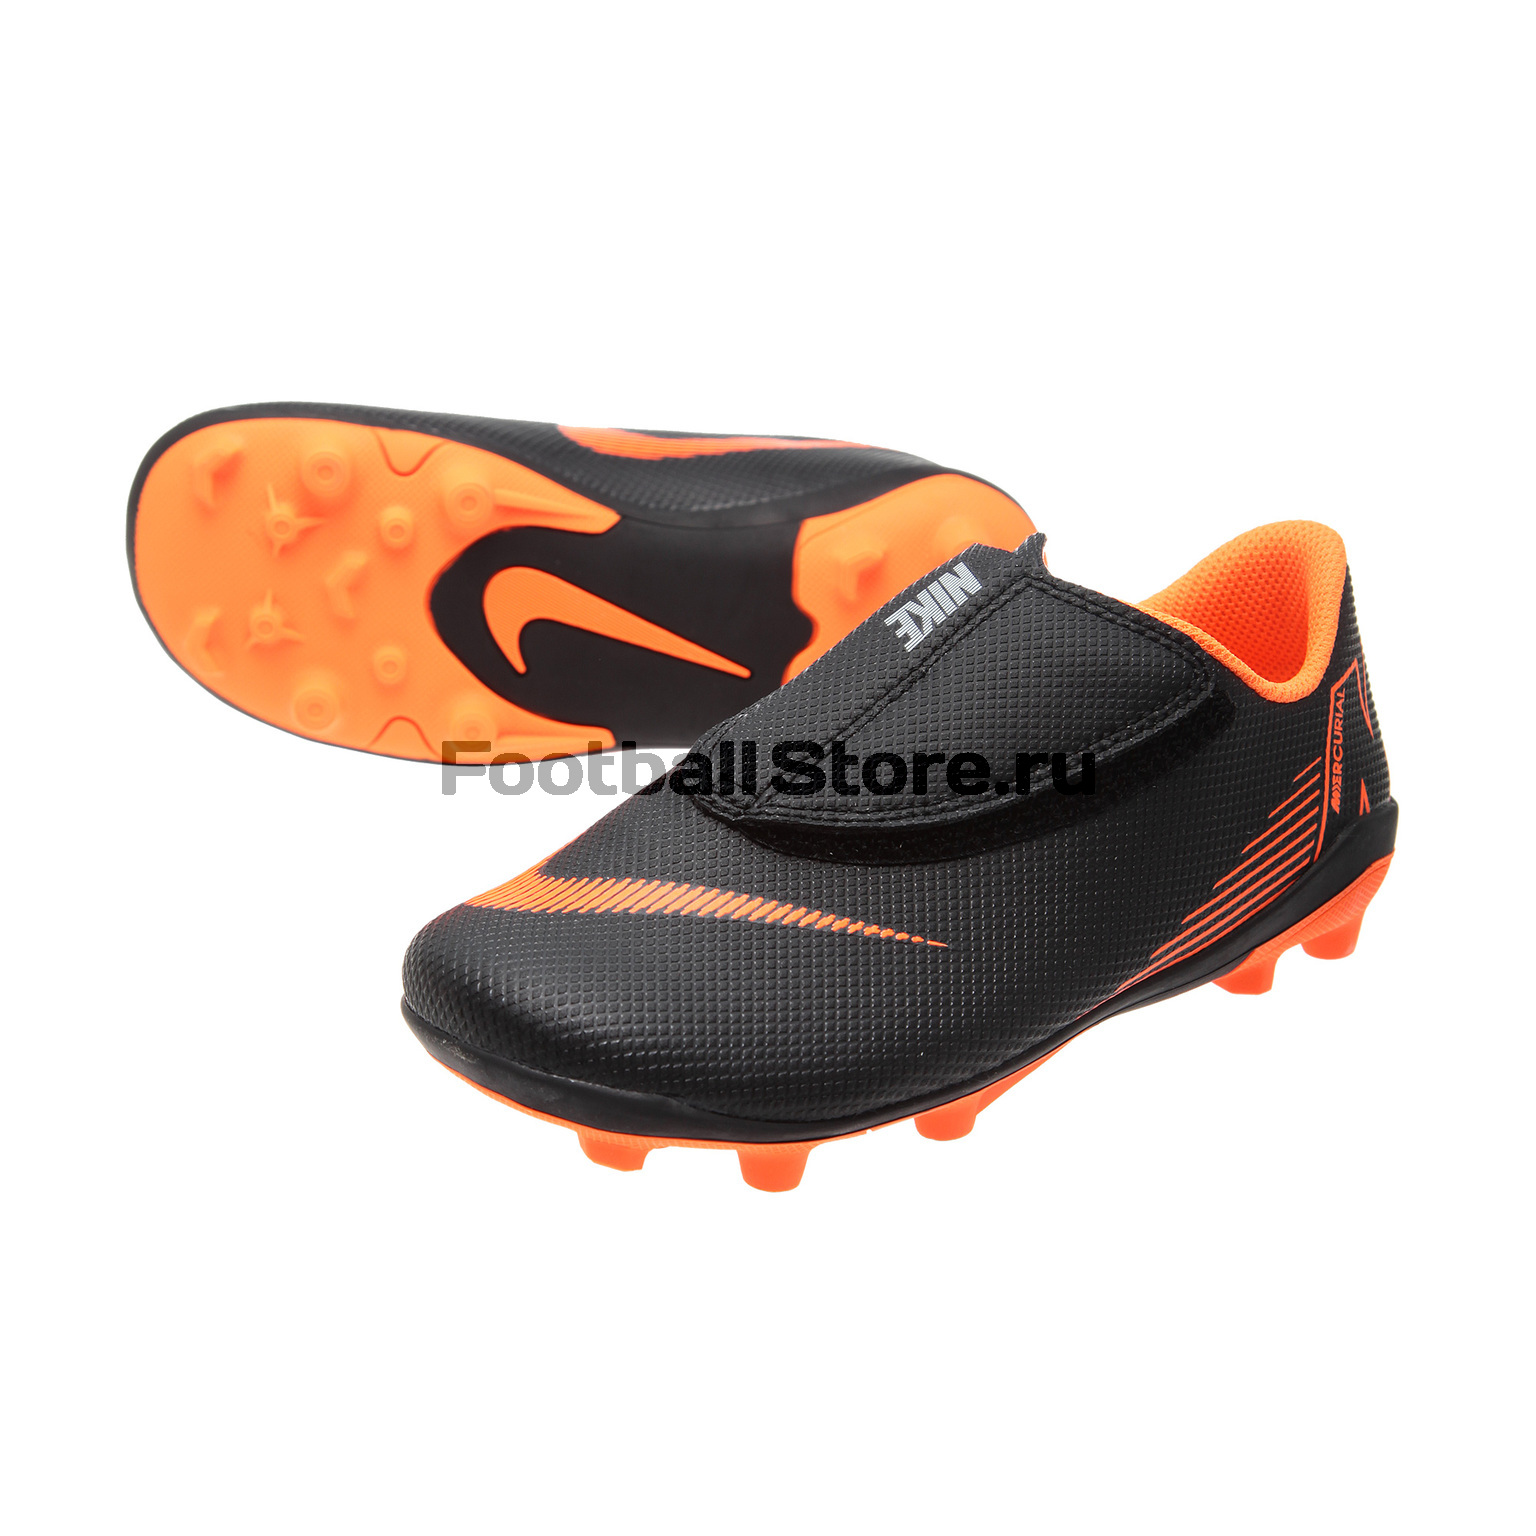 Бутсы Nike JR Vapor 12 Club PS FG/MG AH7351-081 бутсы nike шиповки nike jr tiempox legend vi tf 819191 018